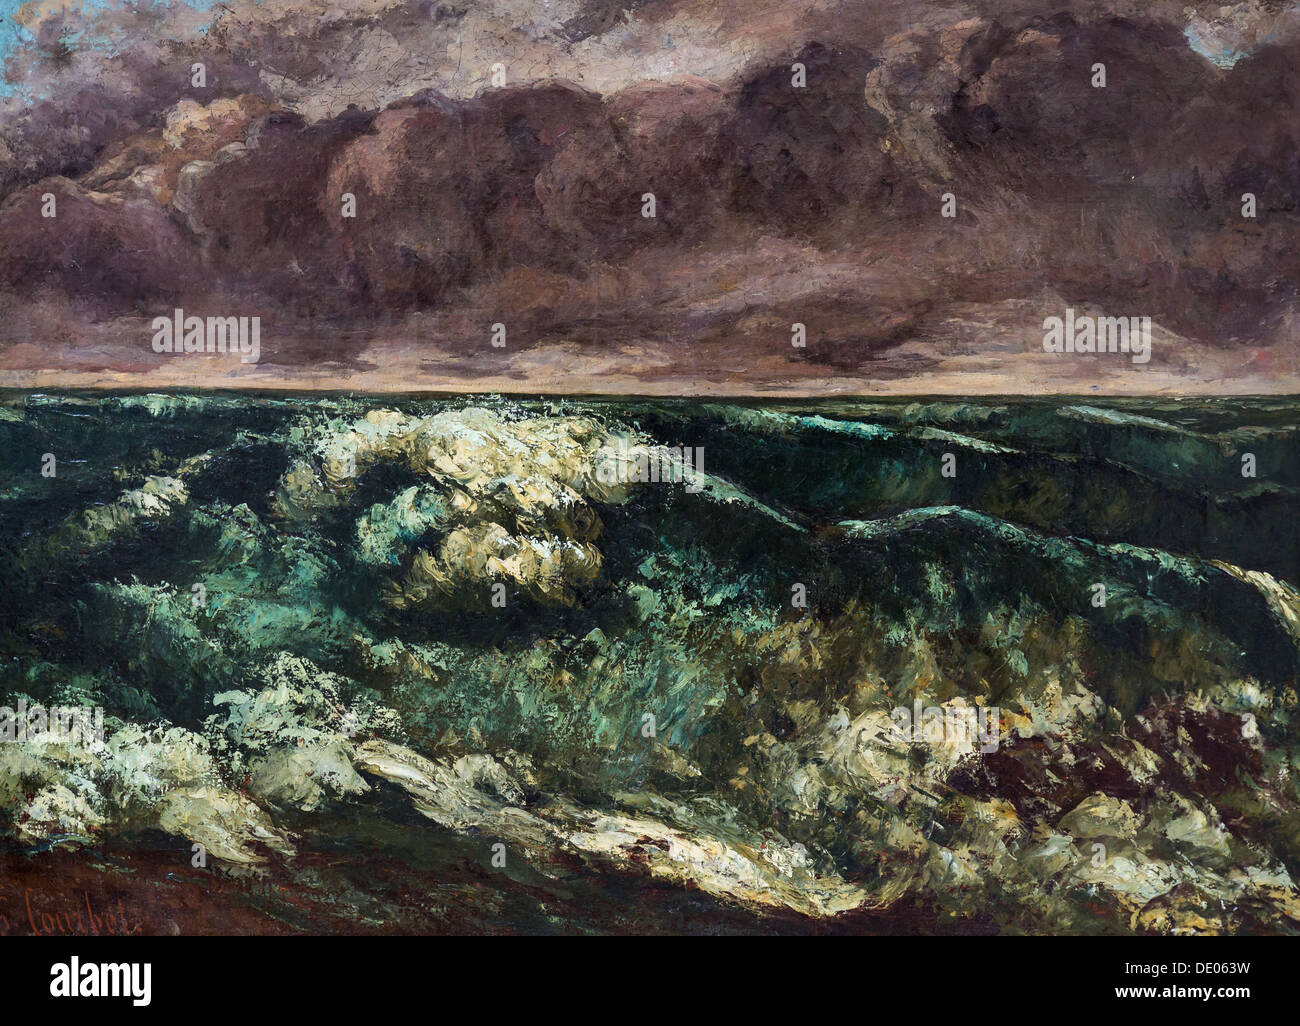 19th century  -  The Wave, 1870 - Gustave Courbet Philippe Sauvan-Magnet / Active Museum oil on canvas - Stock Image